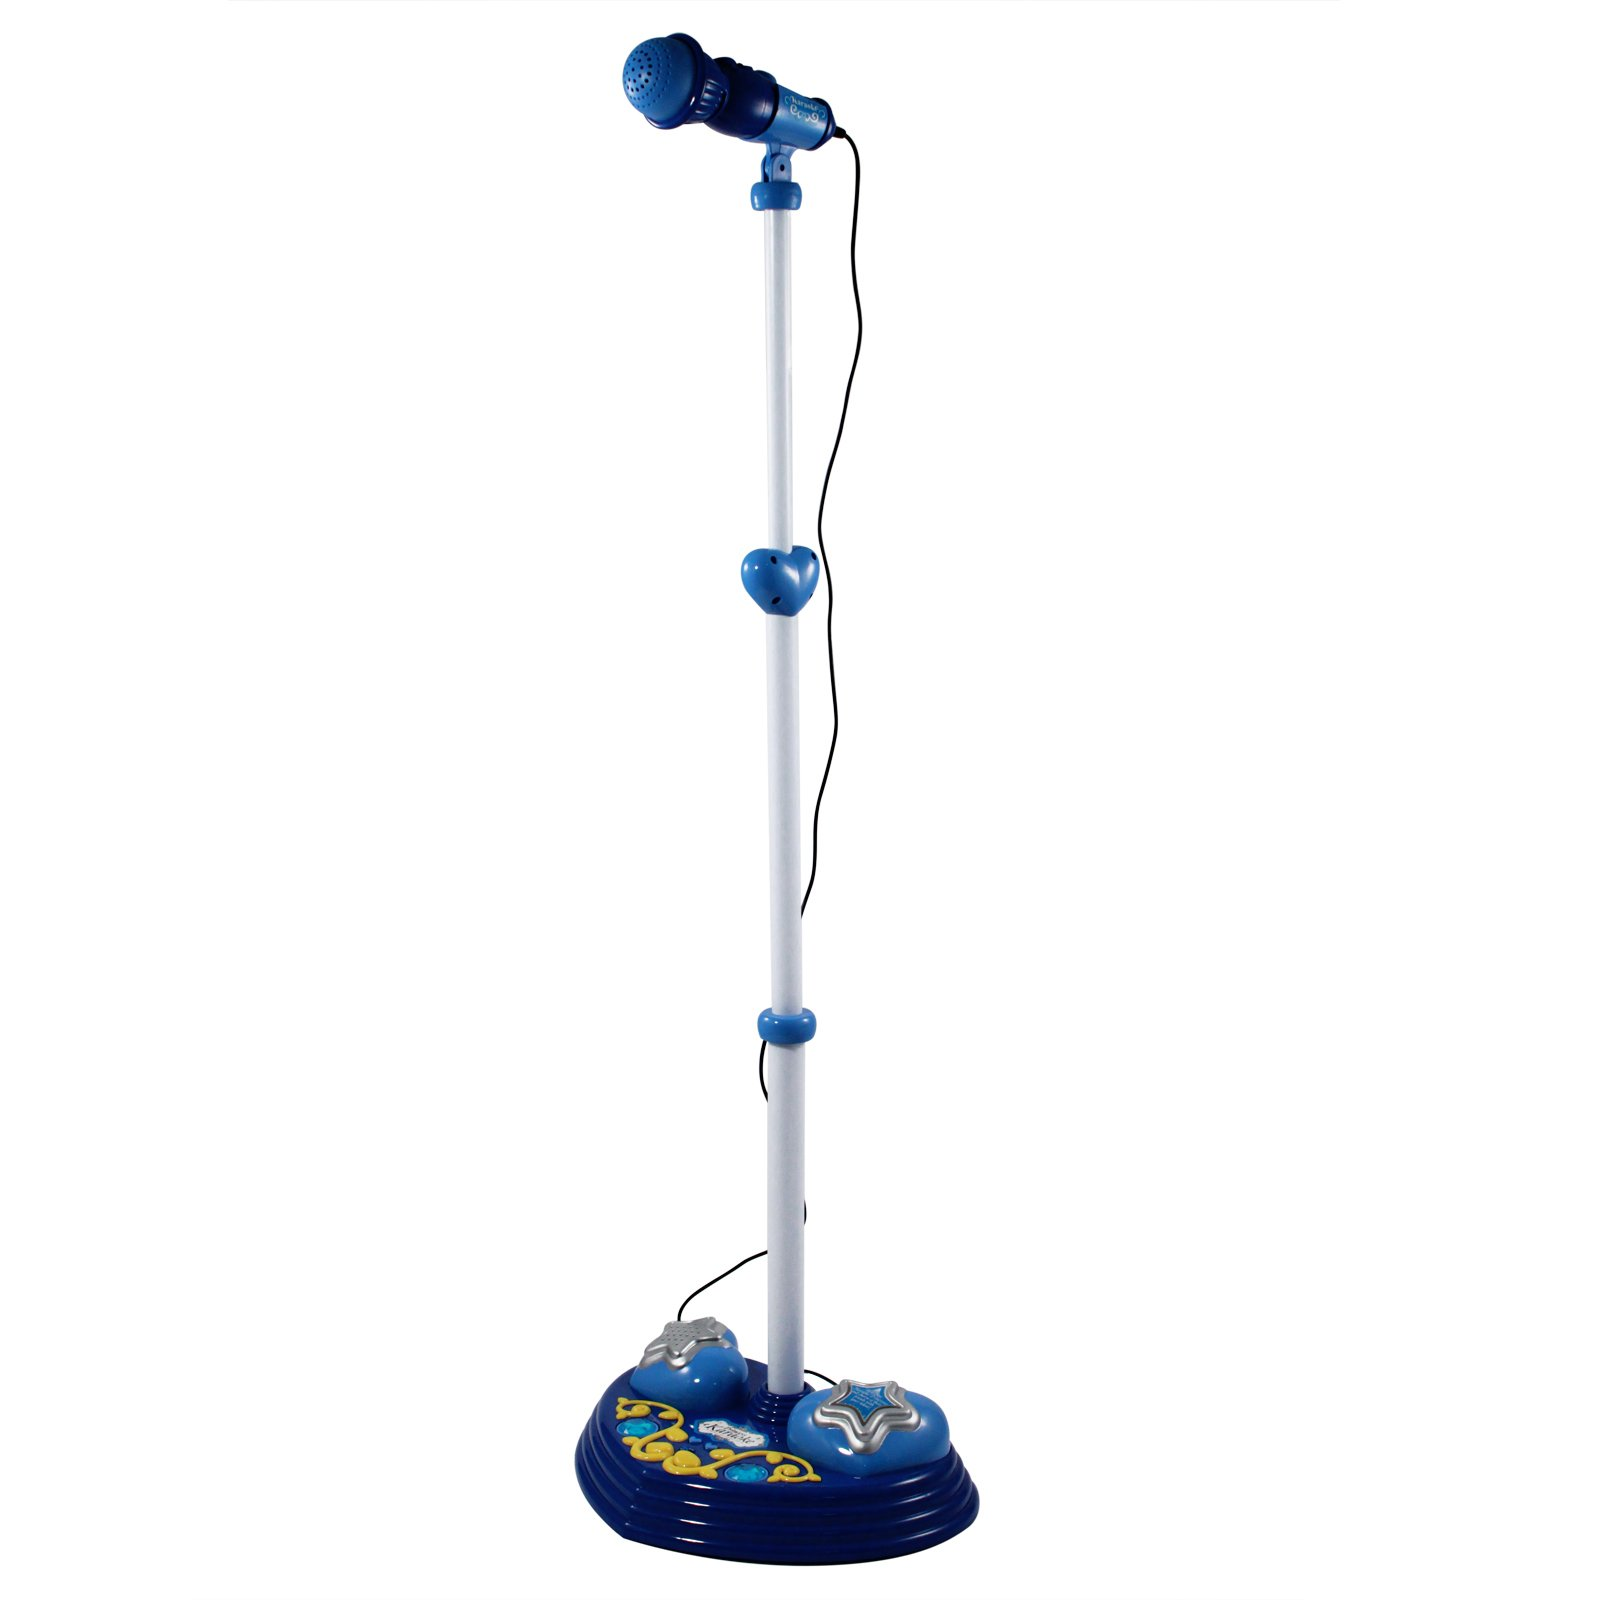 KidPlay Kids Karaoke Microphone Adjustable Stand Pop Star Musical Toy Blue by KidPlay Products